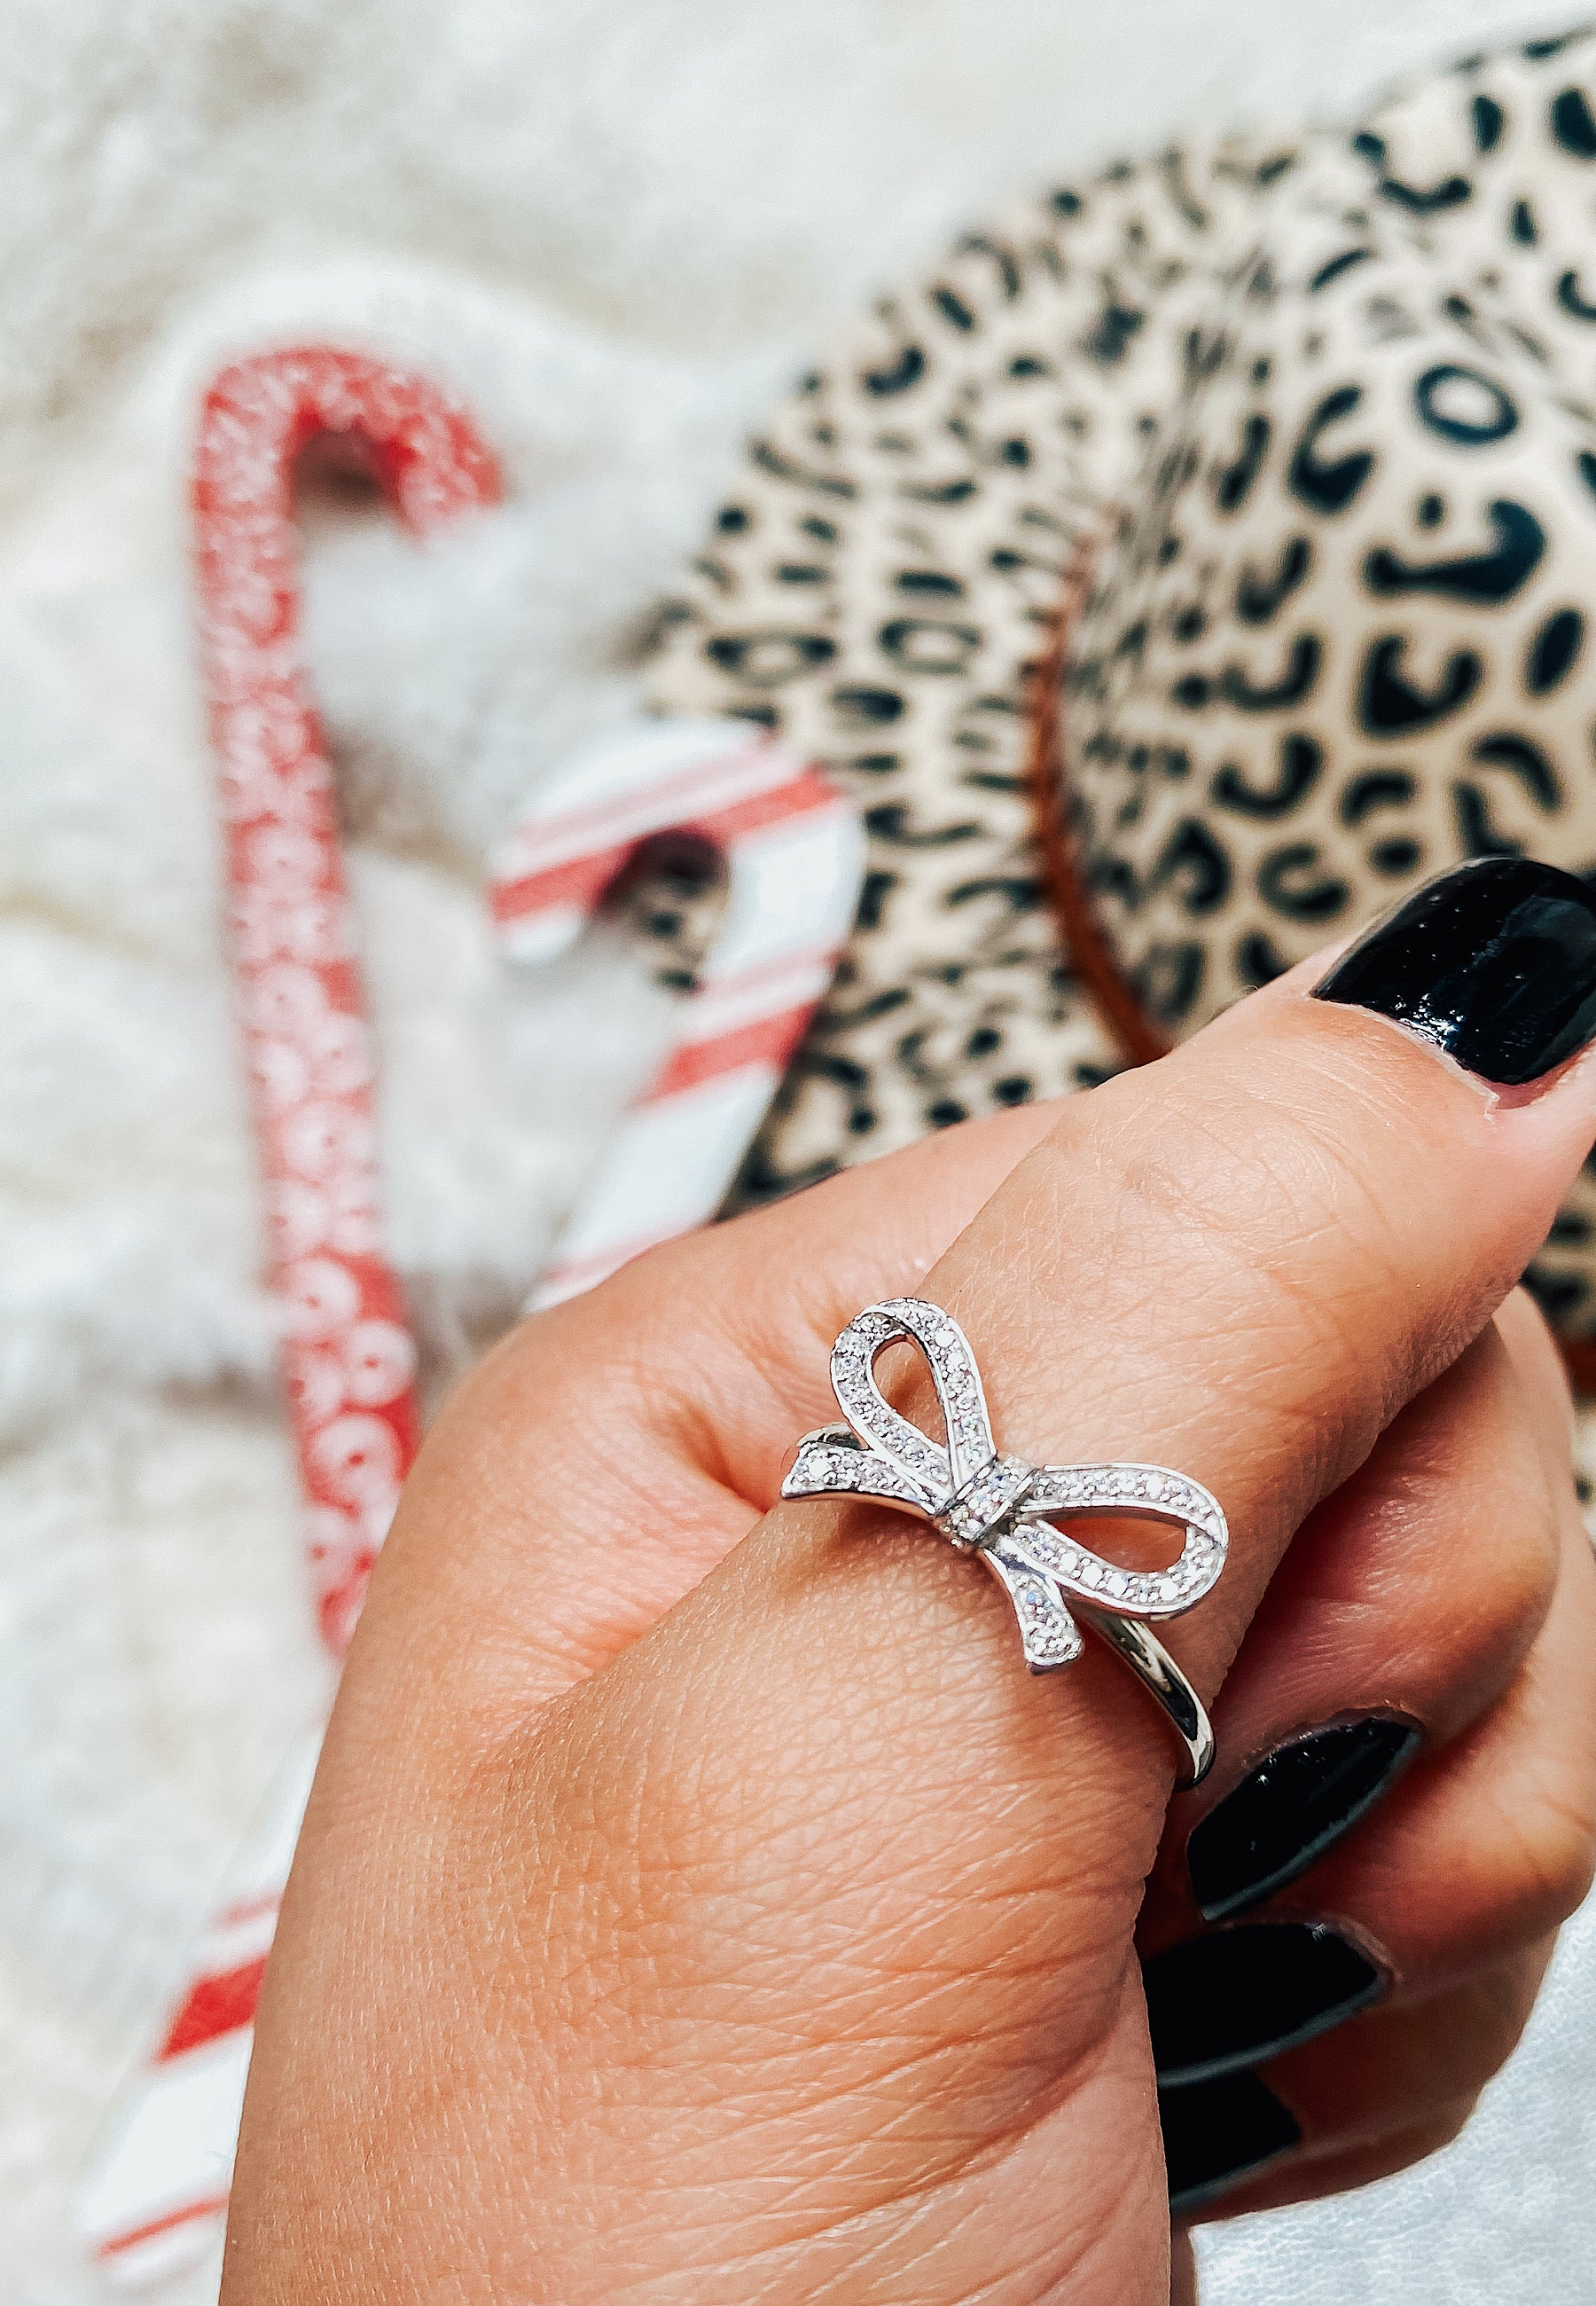 DOORBUSTER: Krush EXCLUSIVE: Crystal Pave Bow Ring